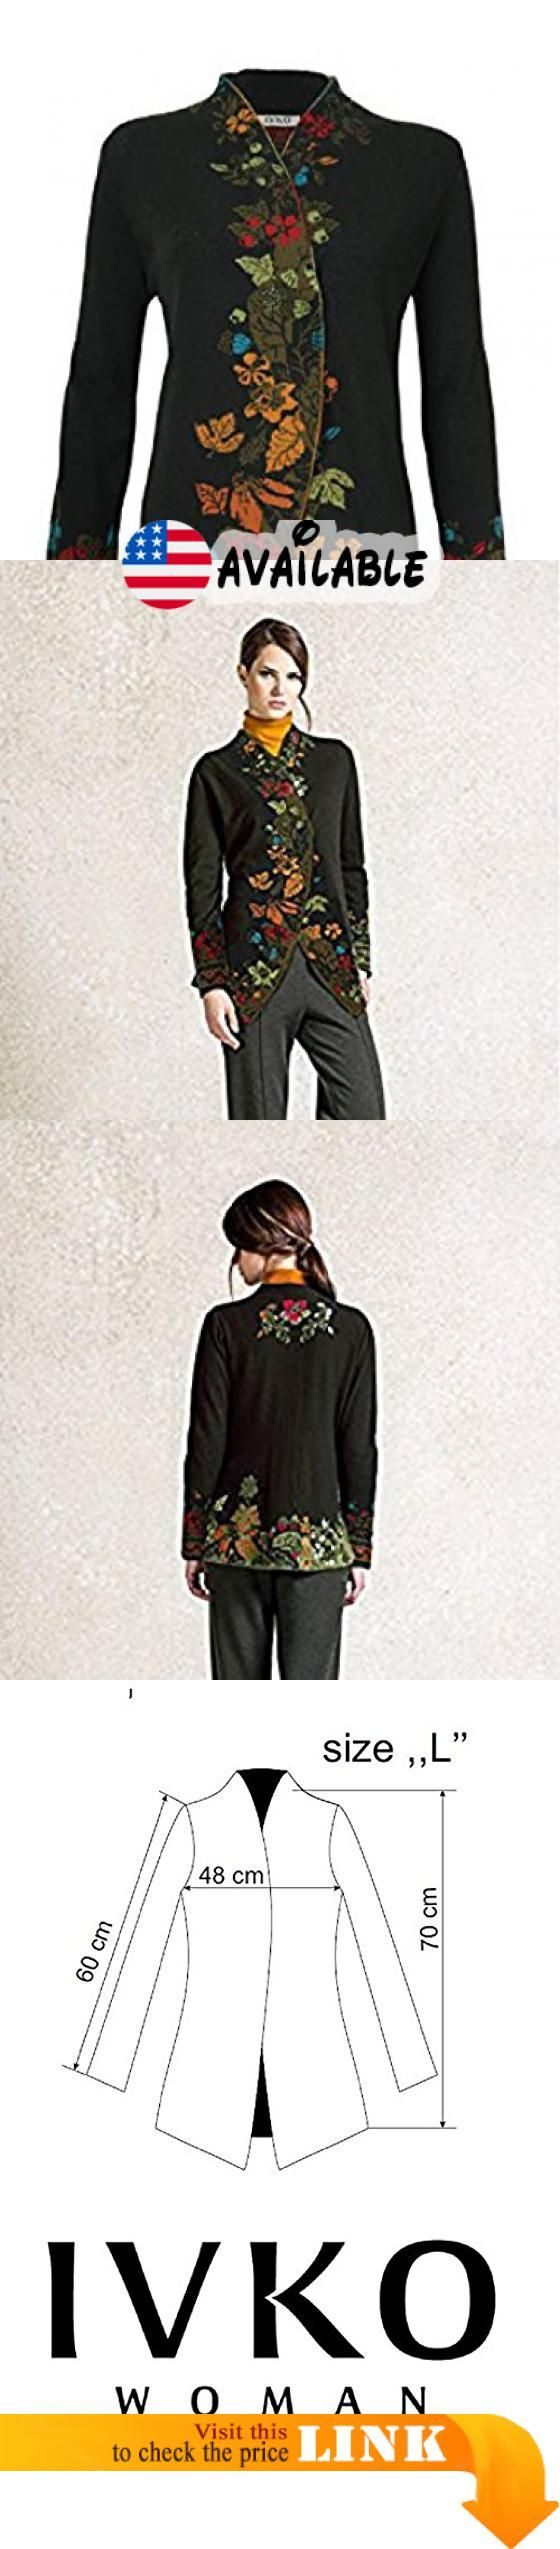 B01K9Y2NGU : IVKO Cardigan Intarsia Pattern Forest (US 10 - EUR 40). Seriously luxurious woolen jacket with a cross-over high collar that instantly adds up nobility to your posture. Rich intarsia representing autumn forest motifs dramatically enhances monochrome basis of the piece. #Apparel #SWEATER